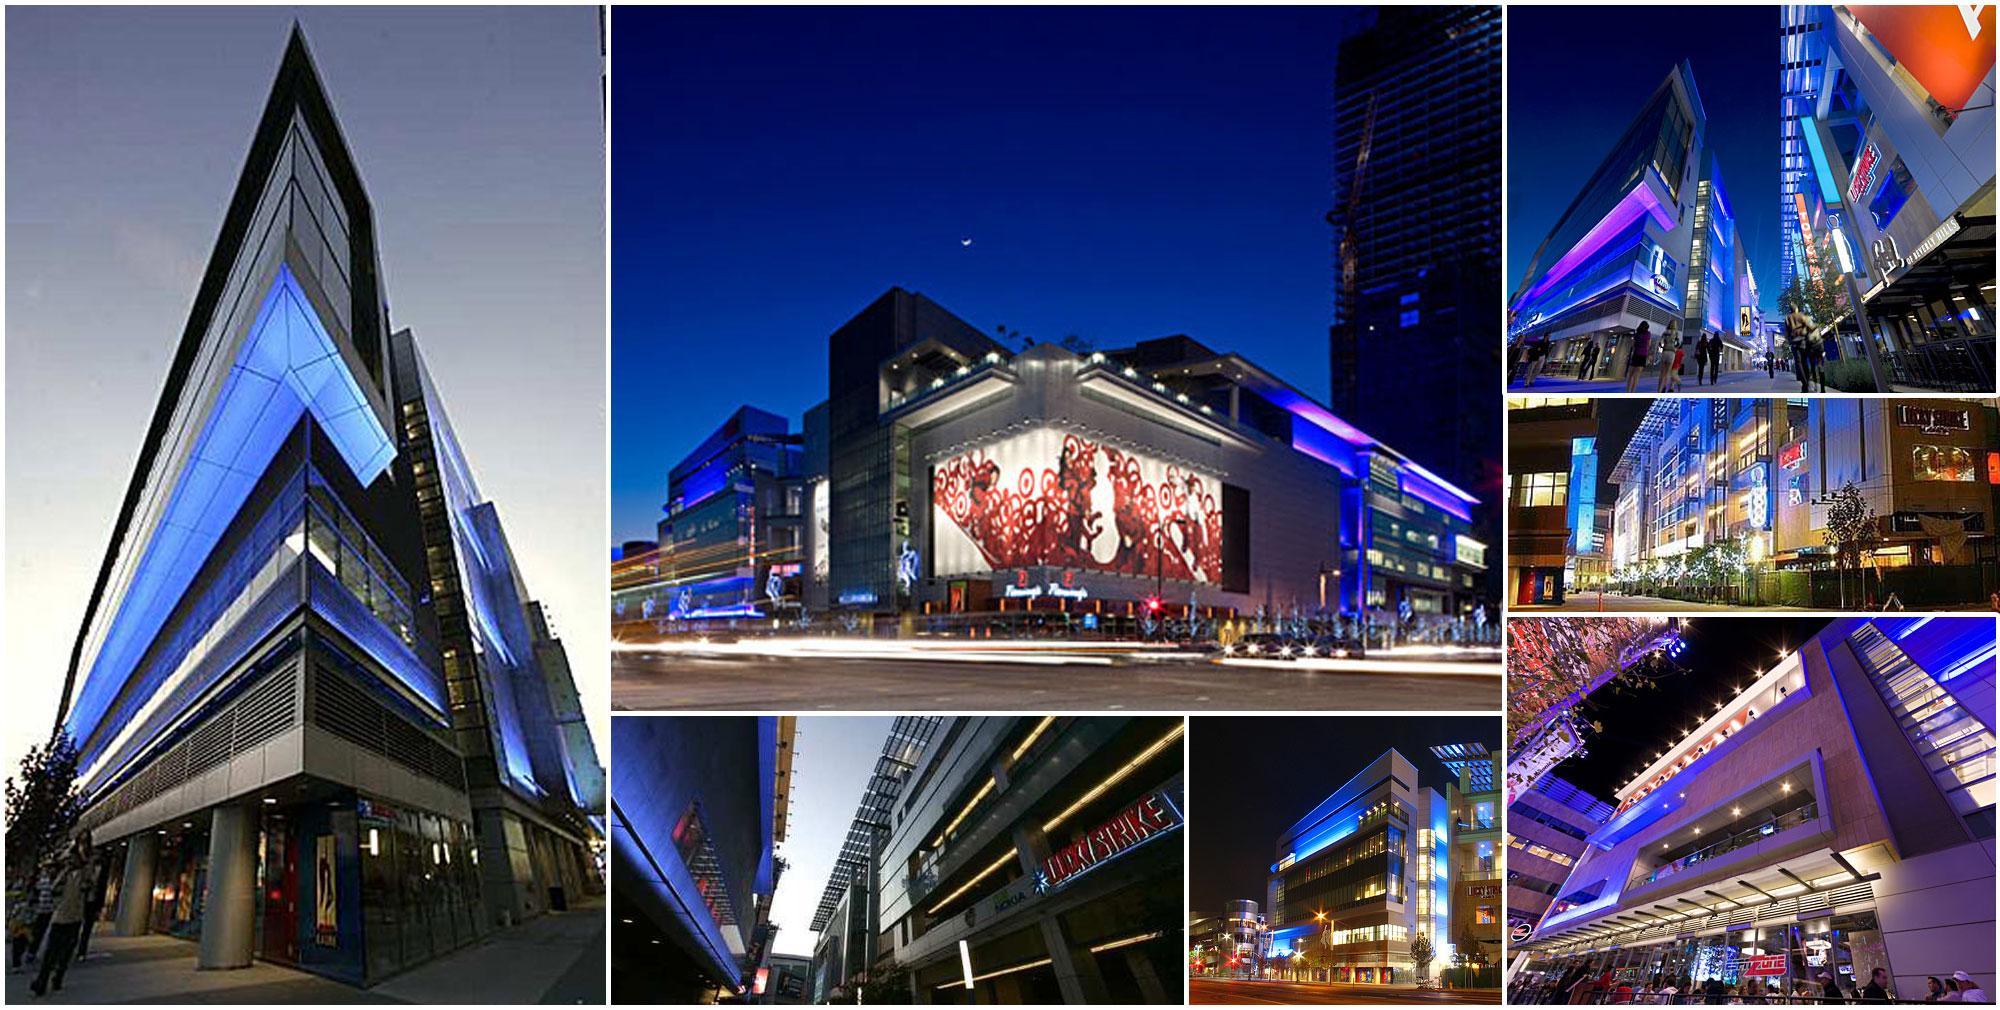 L.A. Live architectural design collage